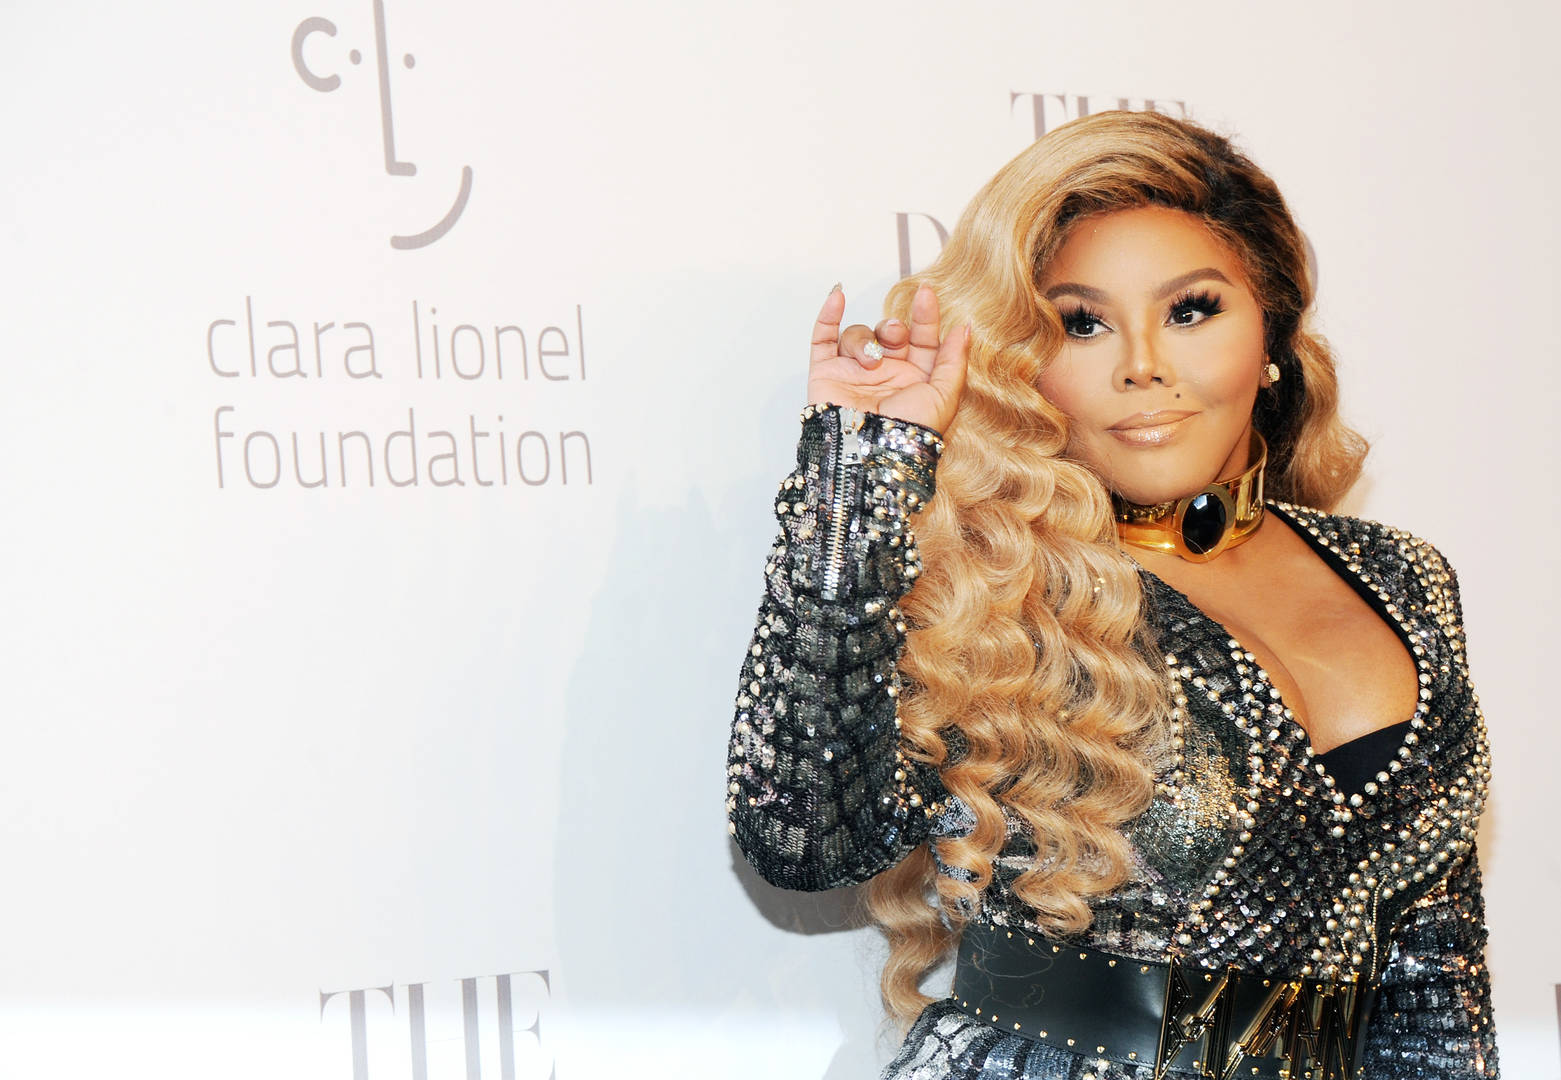 """Stefflon Don Praises Her Idol Lil Kim: """"You Already Know Who The Real QUEEN Is!"""""""